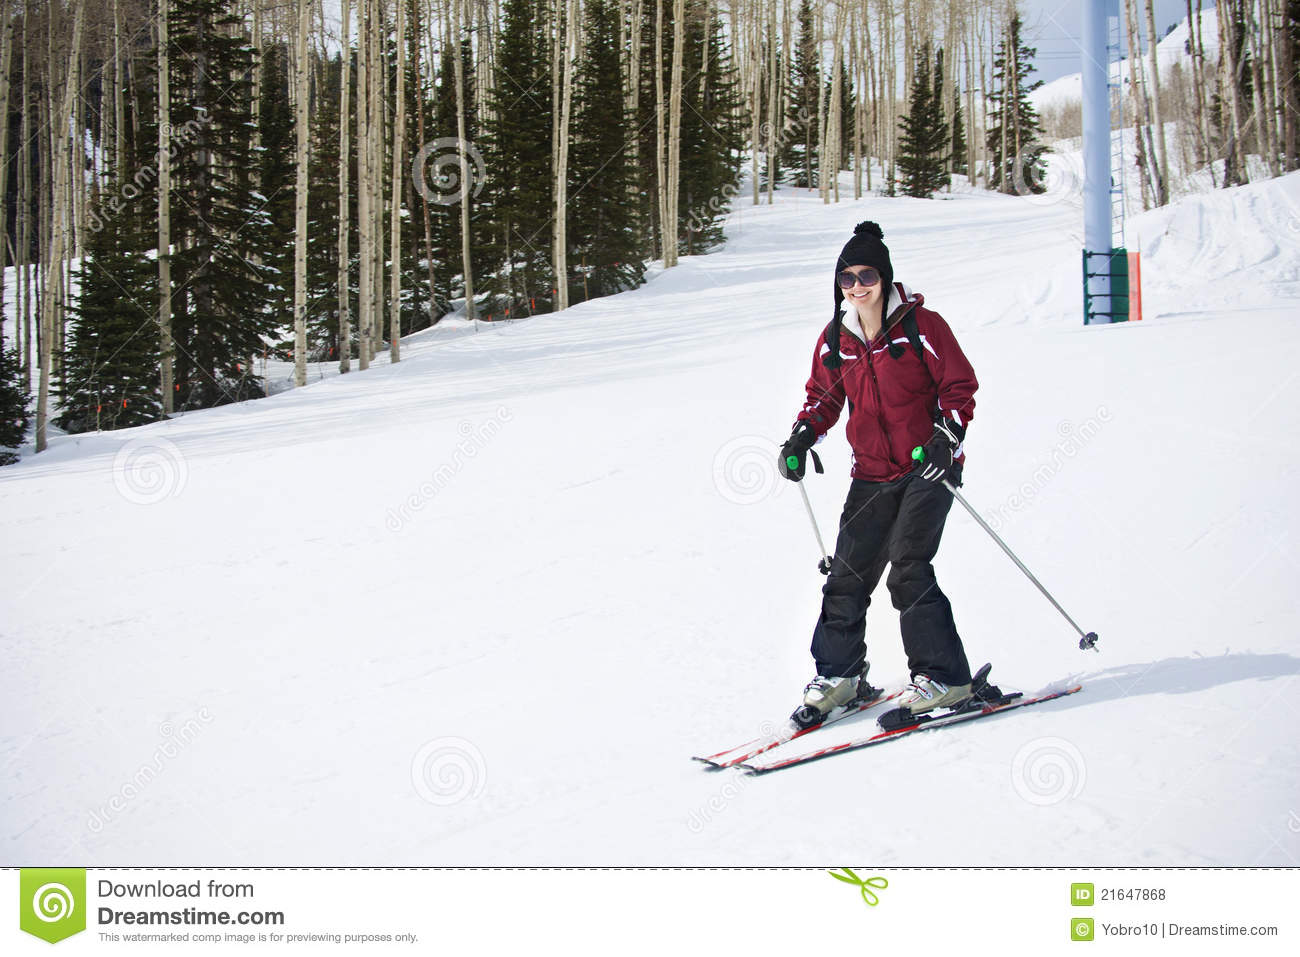 Adult Learn to Ski and Snowboard Lessons | Sunday River